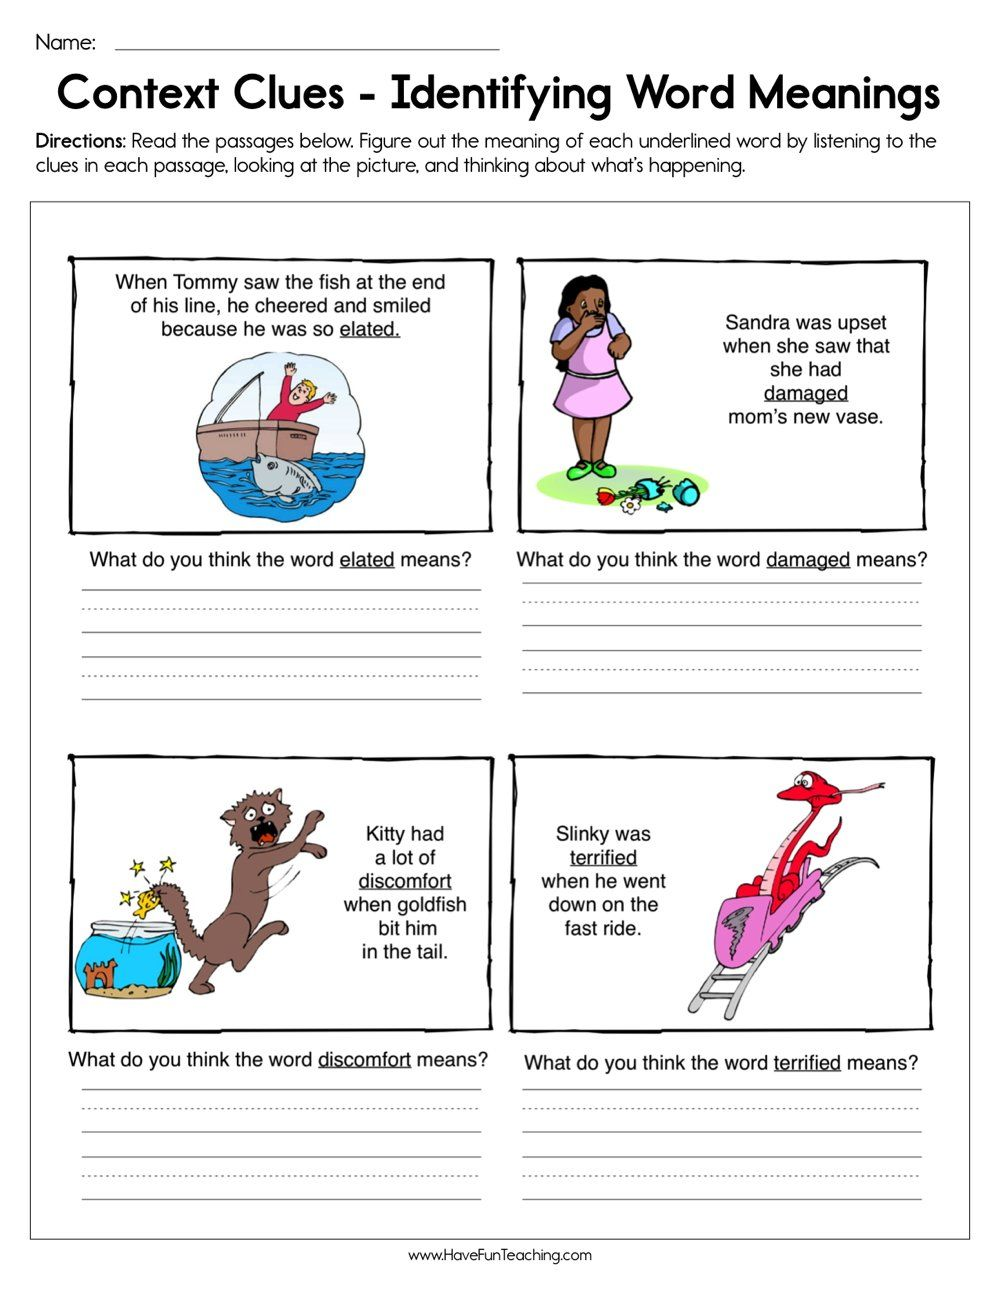 Context Clues Identifying Word Meaning Worksheet   Context clues worksheets [ 1294 x 1000 Pixel ]